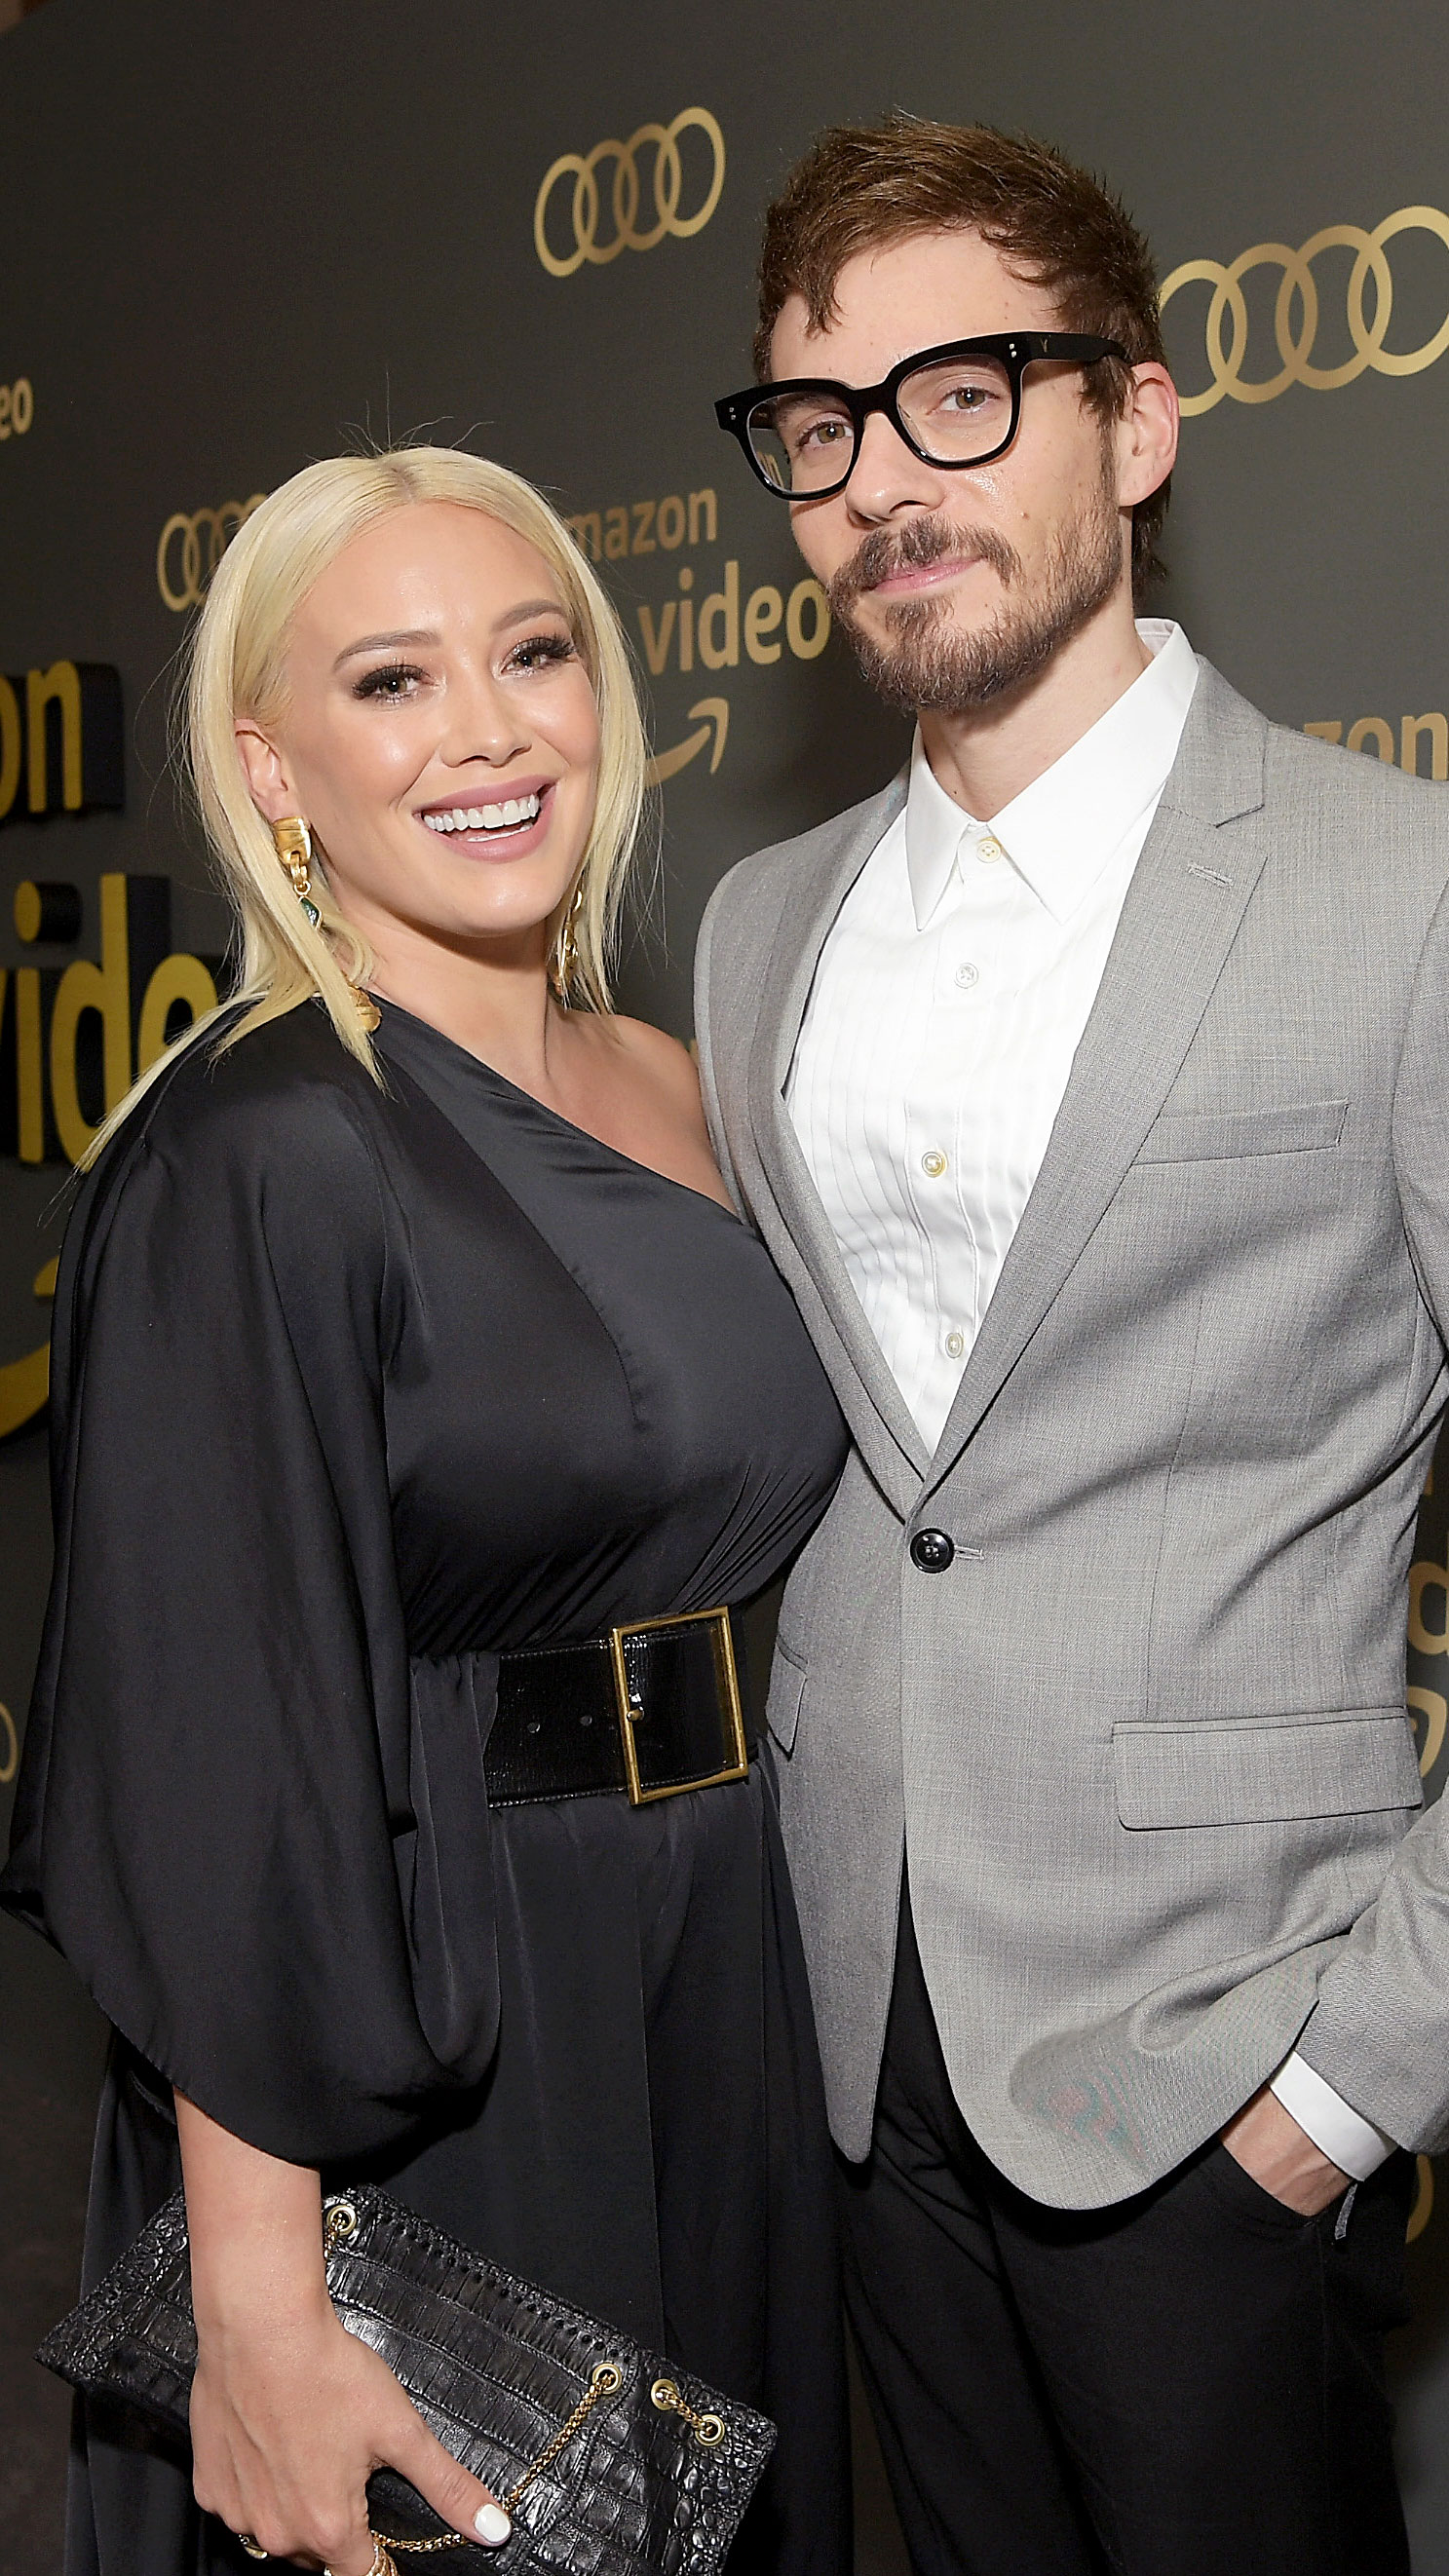 """hilary duff matthew koma engaged - Koma proposed to Duff after dating on and off for two and a half years. """"He asked me to be his wife,"""" she gushed on Instagram alongside a photo with her new diamond ring."""